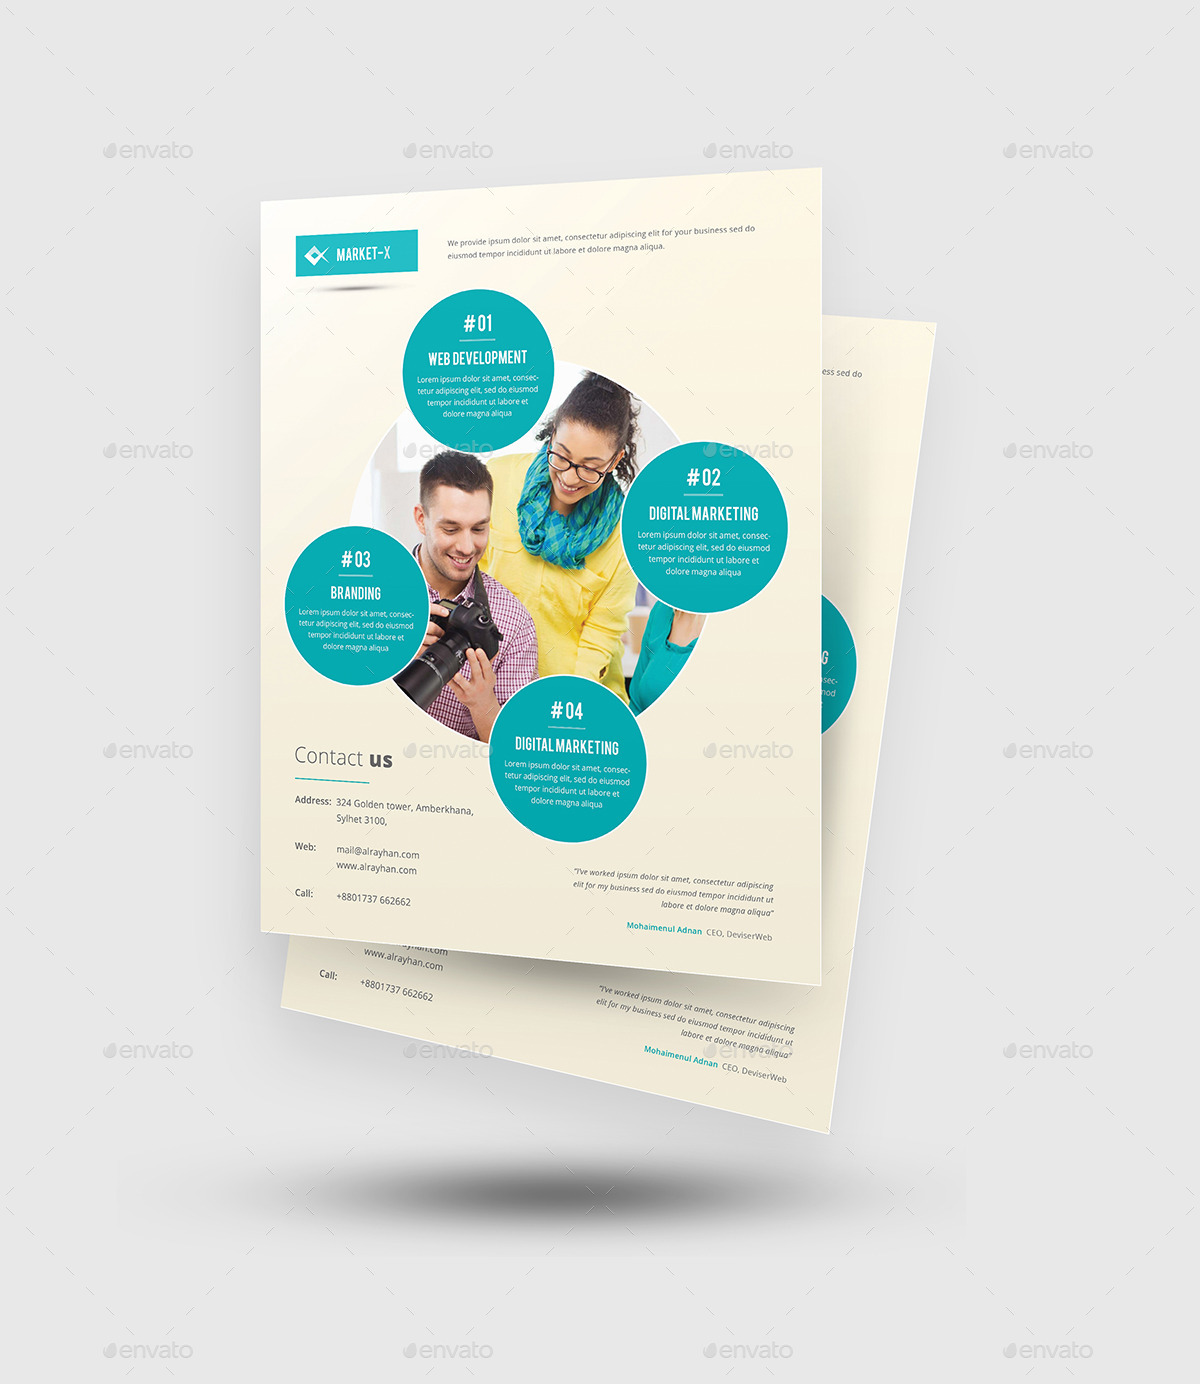 web agency service flyer templates by rtralrayhan graphicriver web agency service flyer templates